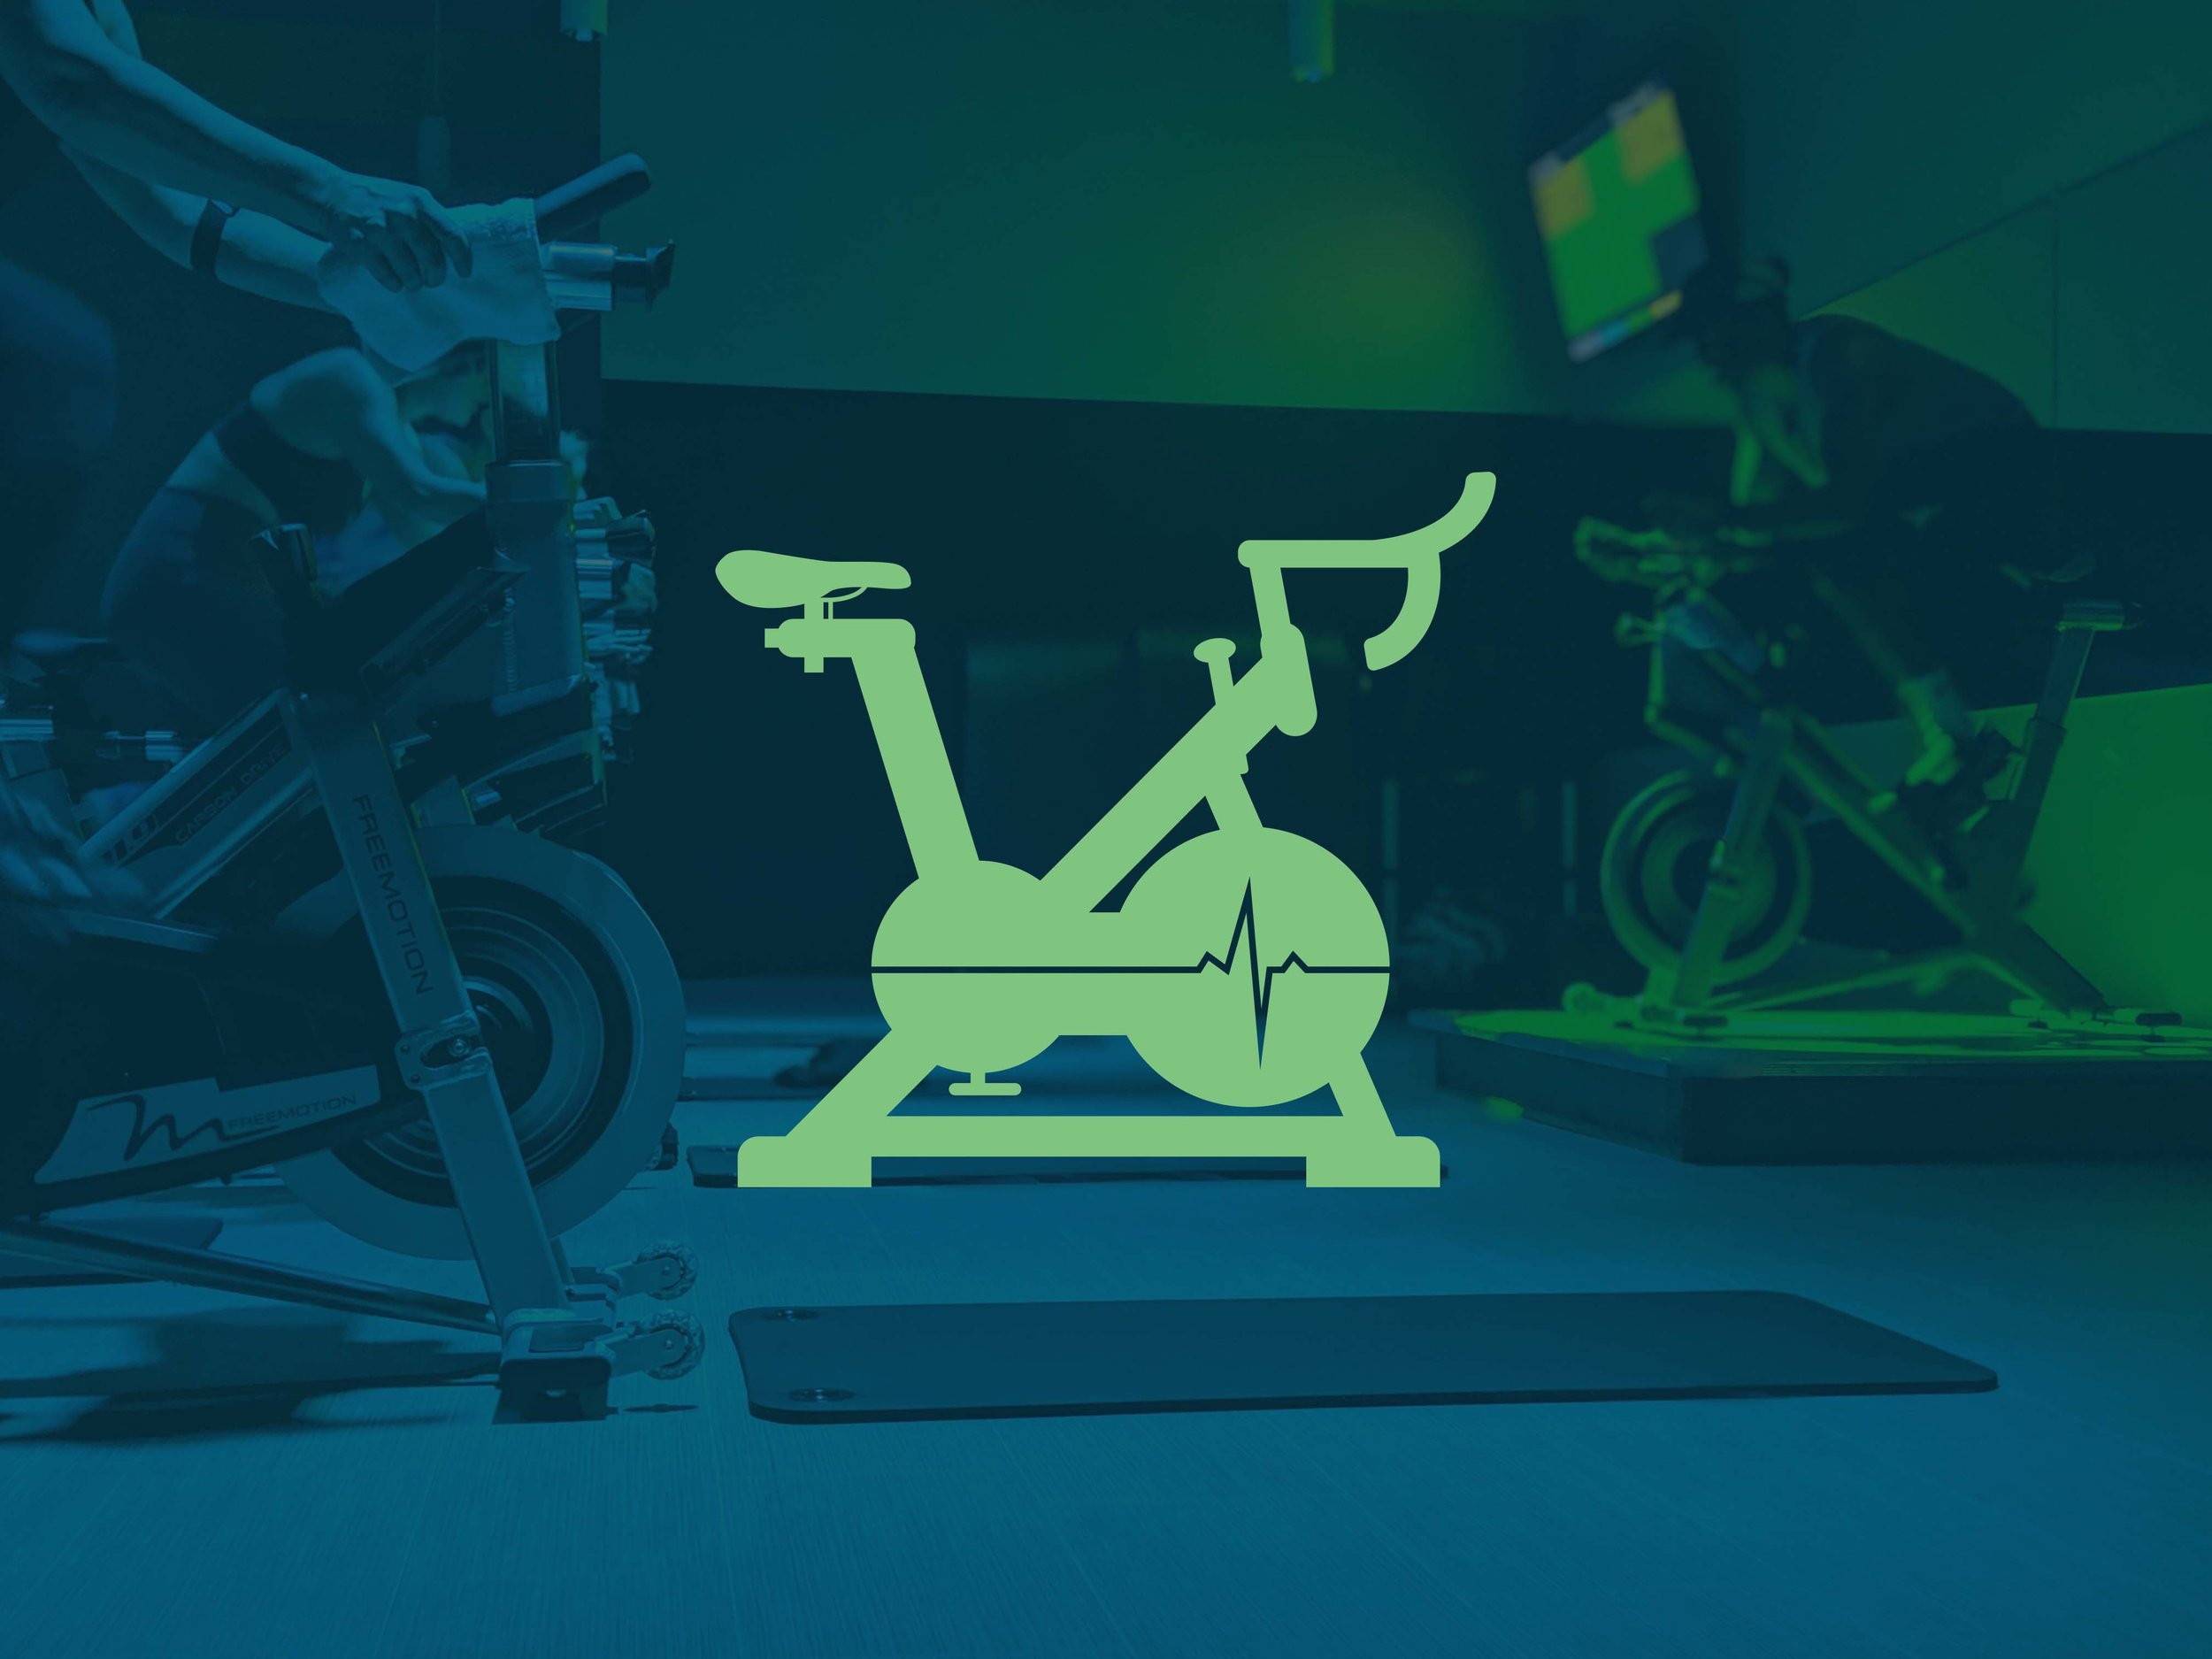 SPIN - High intensity Rythm based interval spinning that manipulates your core and legs.Our certified coaches will lead you through a cycling routine that leaves your heart pumping.